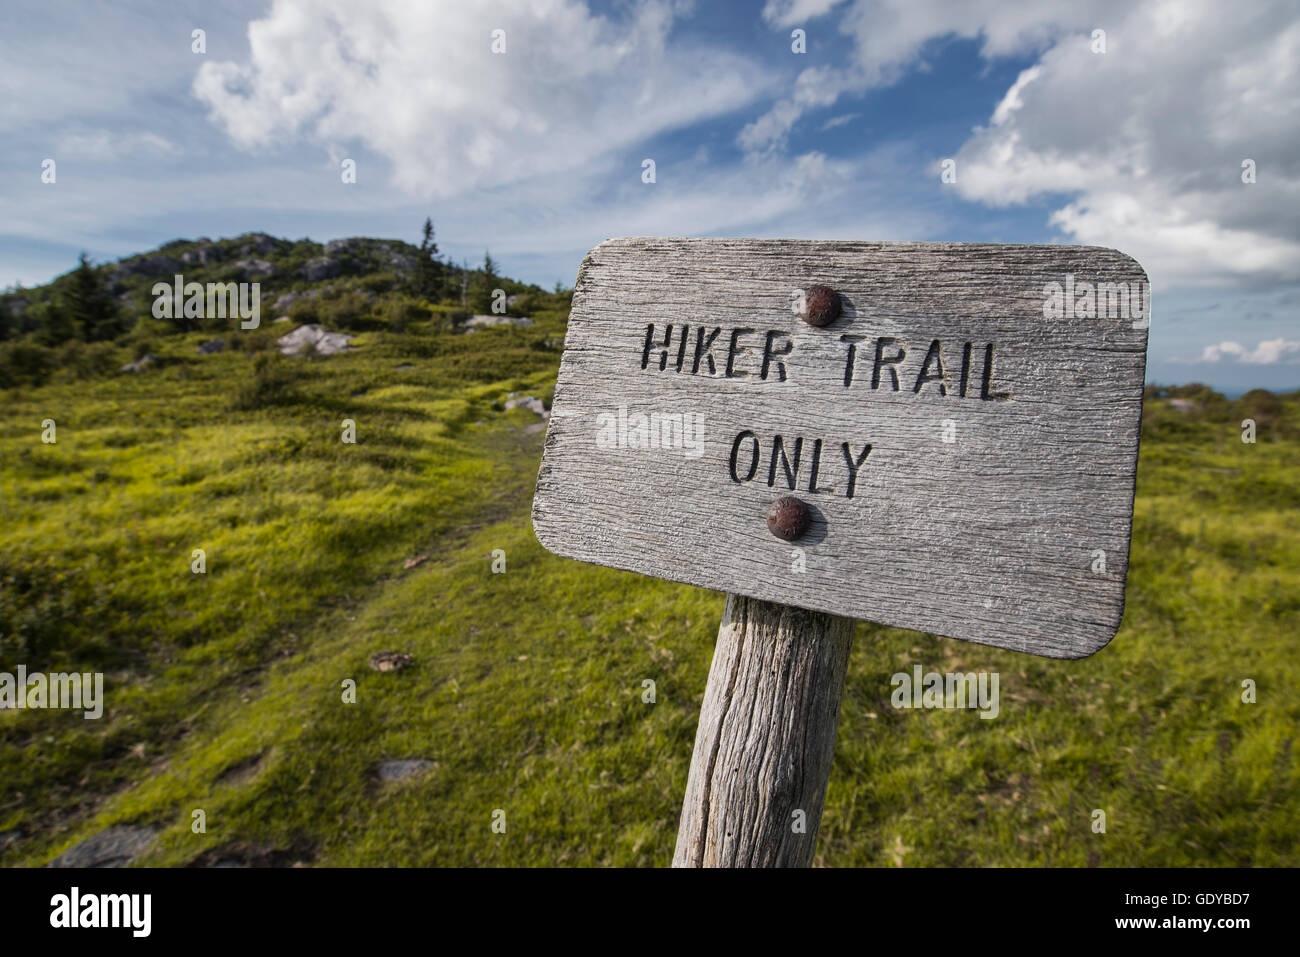 Wooden hiker trail only sign on the Appalachian Trail in Virginia. - Stock Image